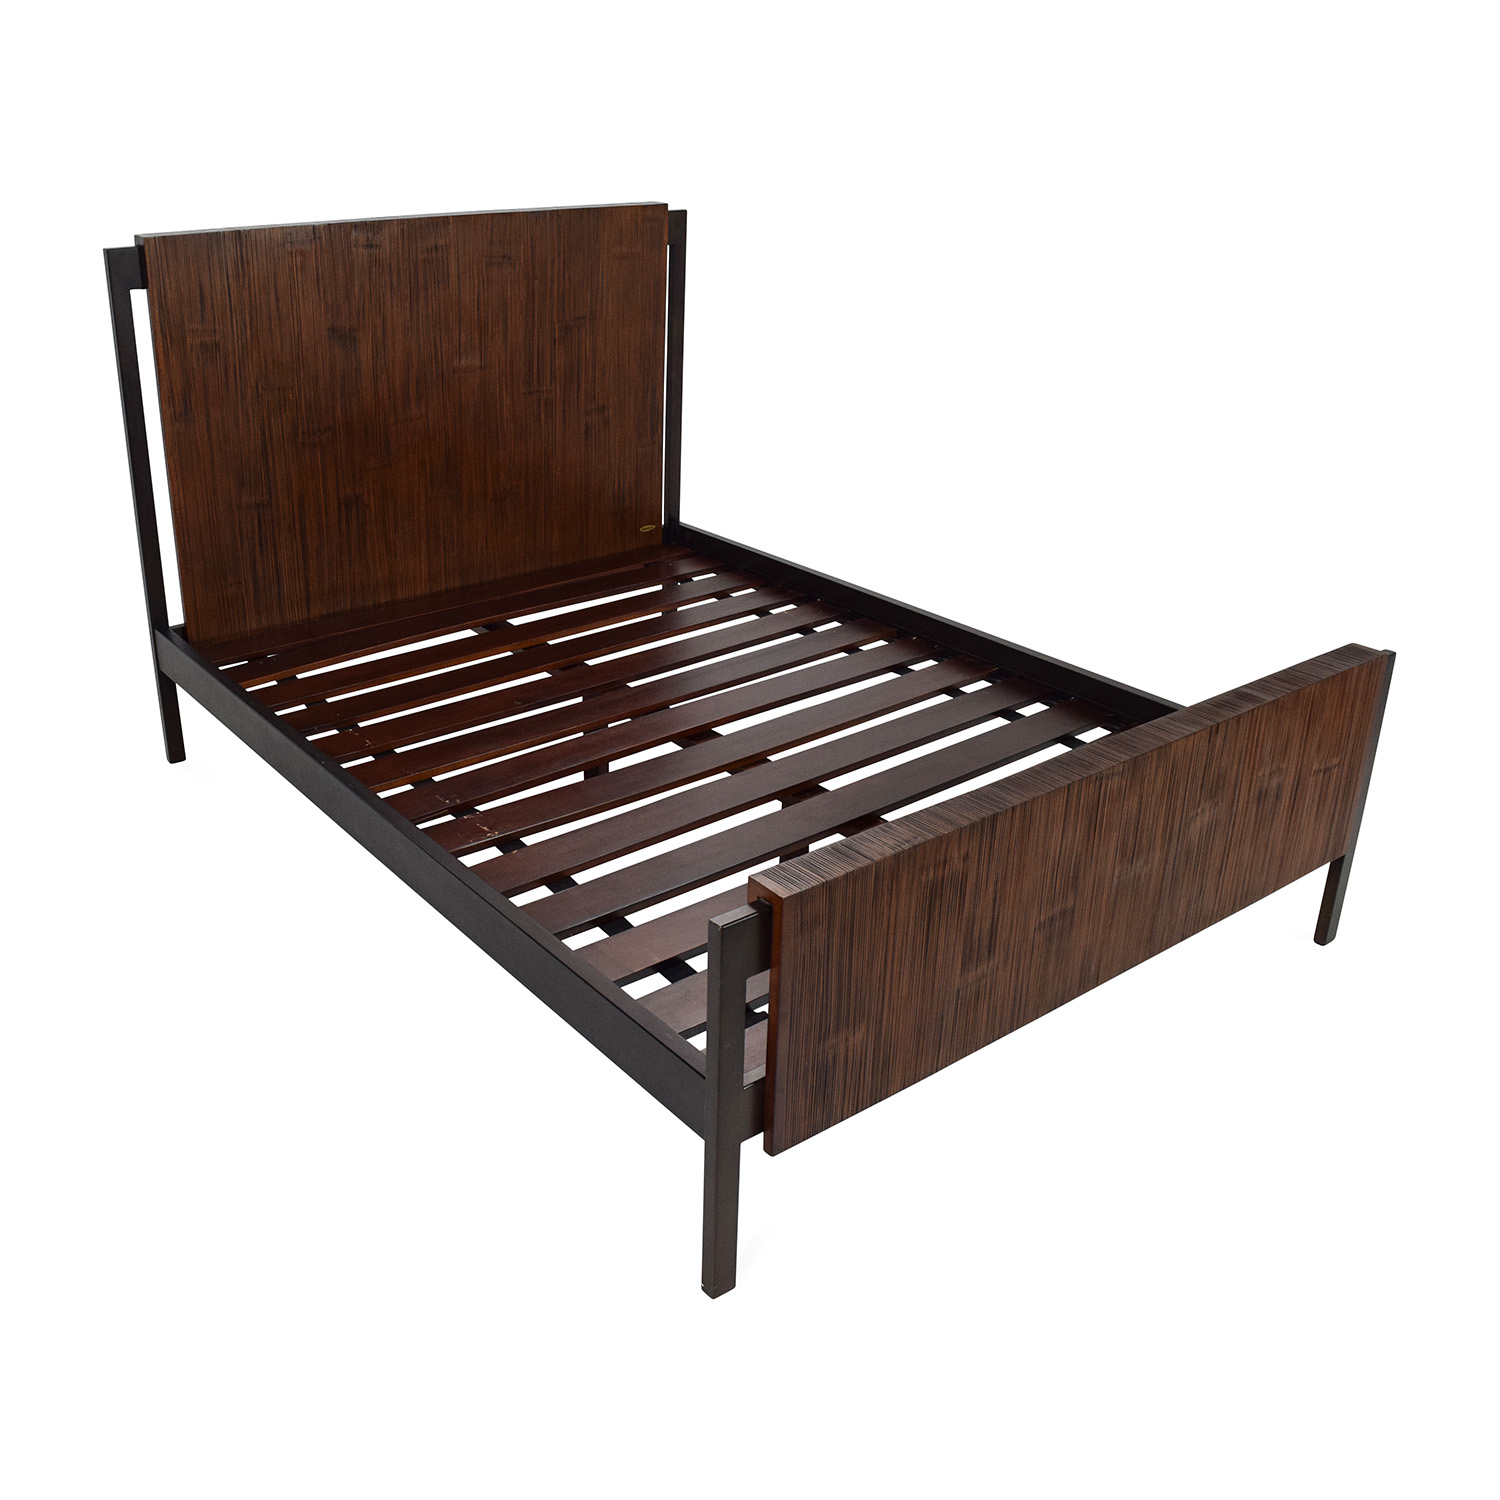 66% off - crate and barrel crate and barrel madura full bed frame